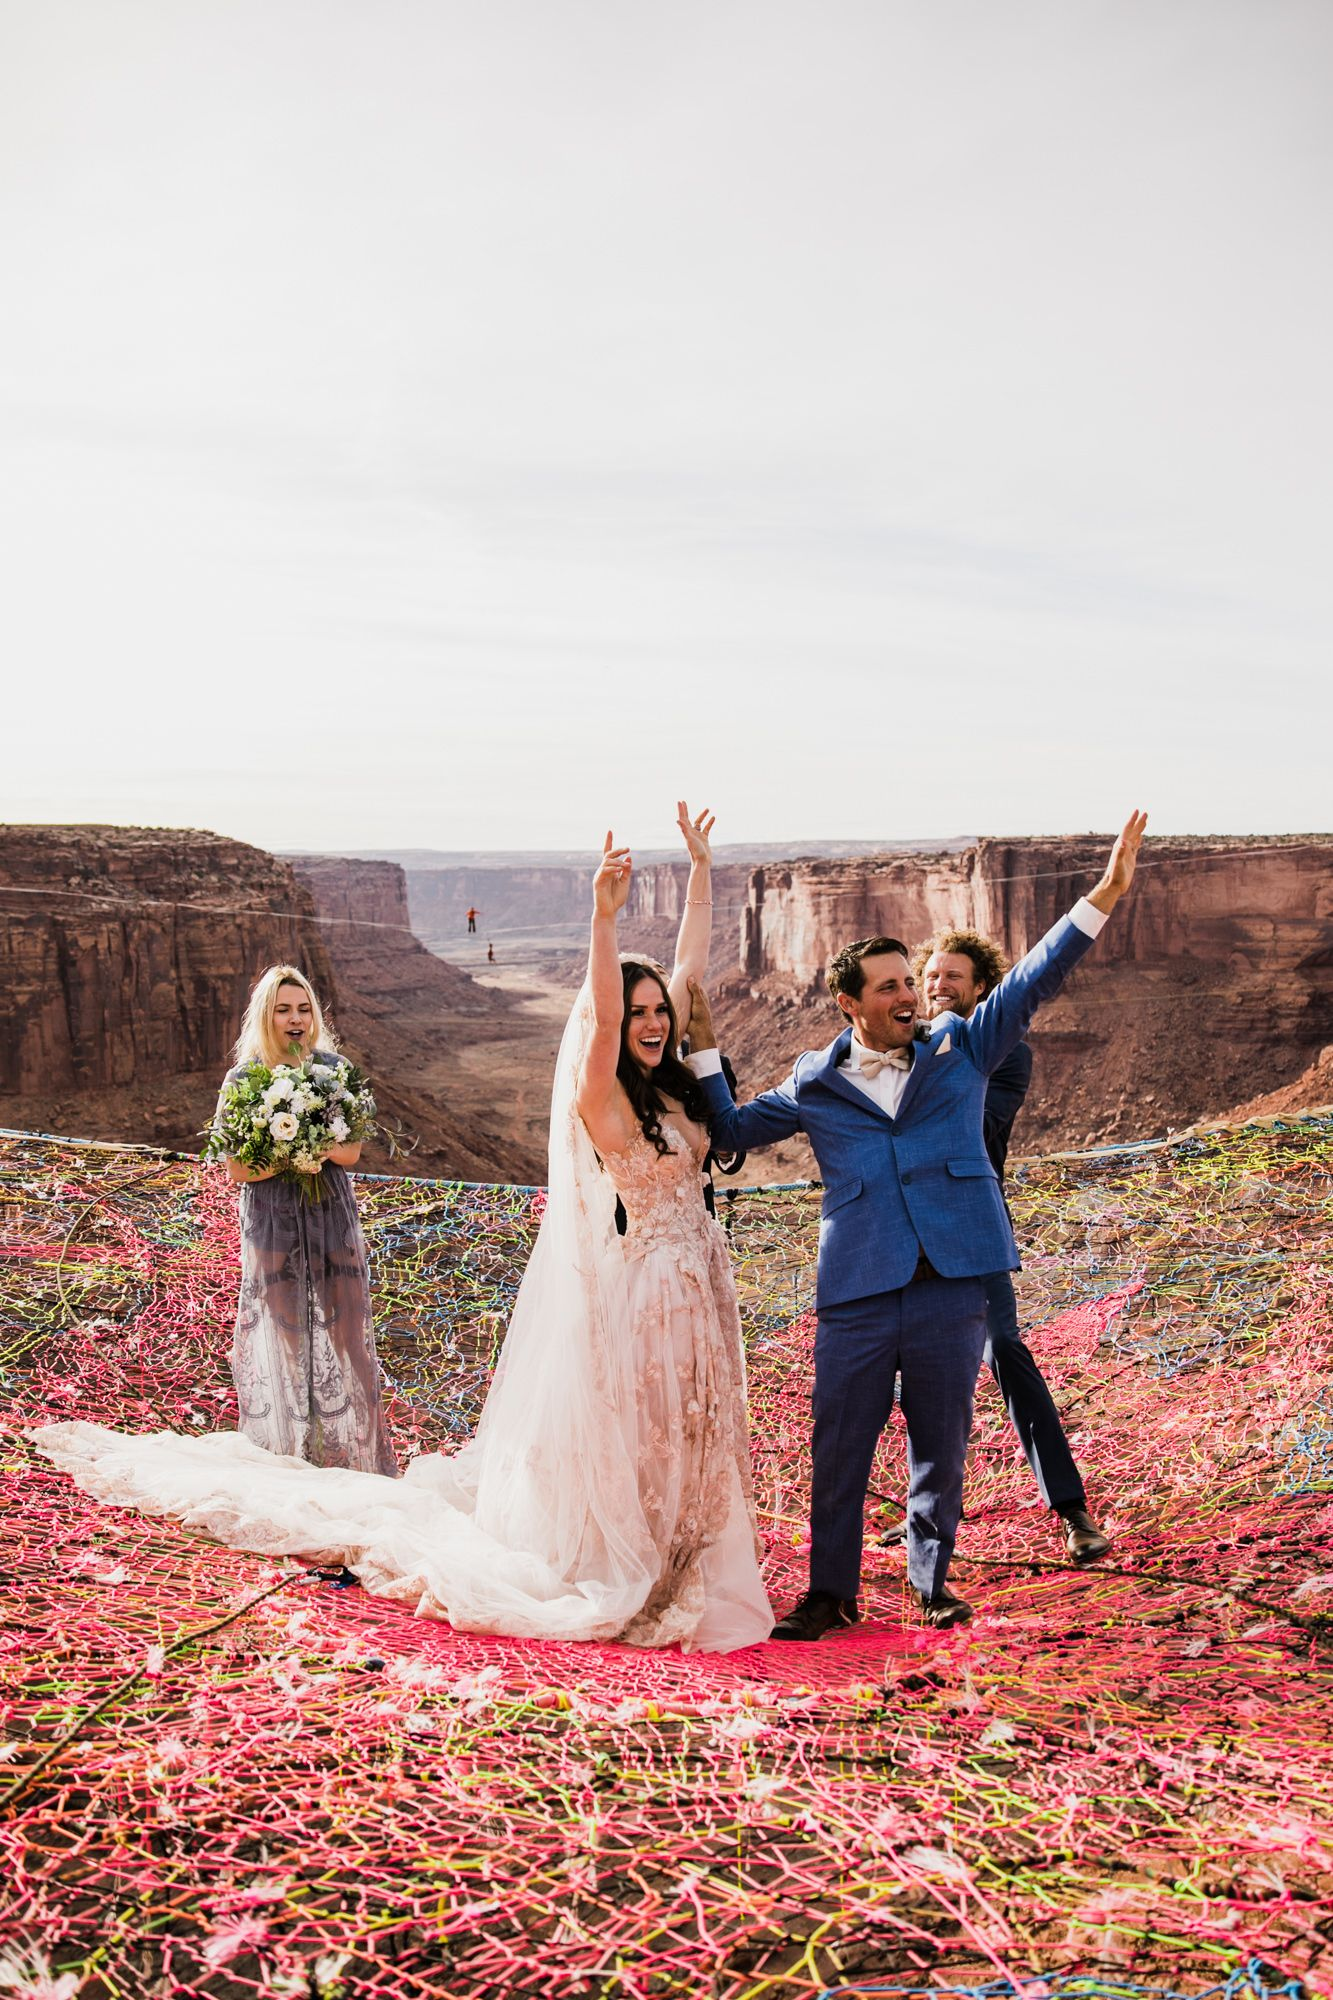 Spacenet Wedding Over A Canyon In Moab With Images Adventure